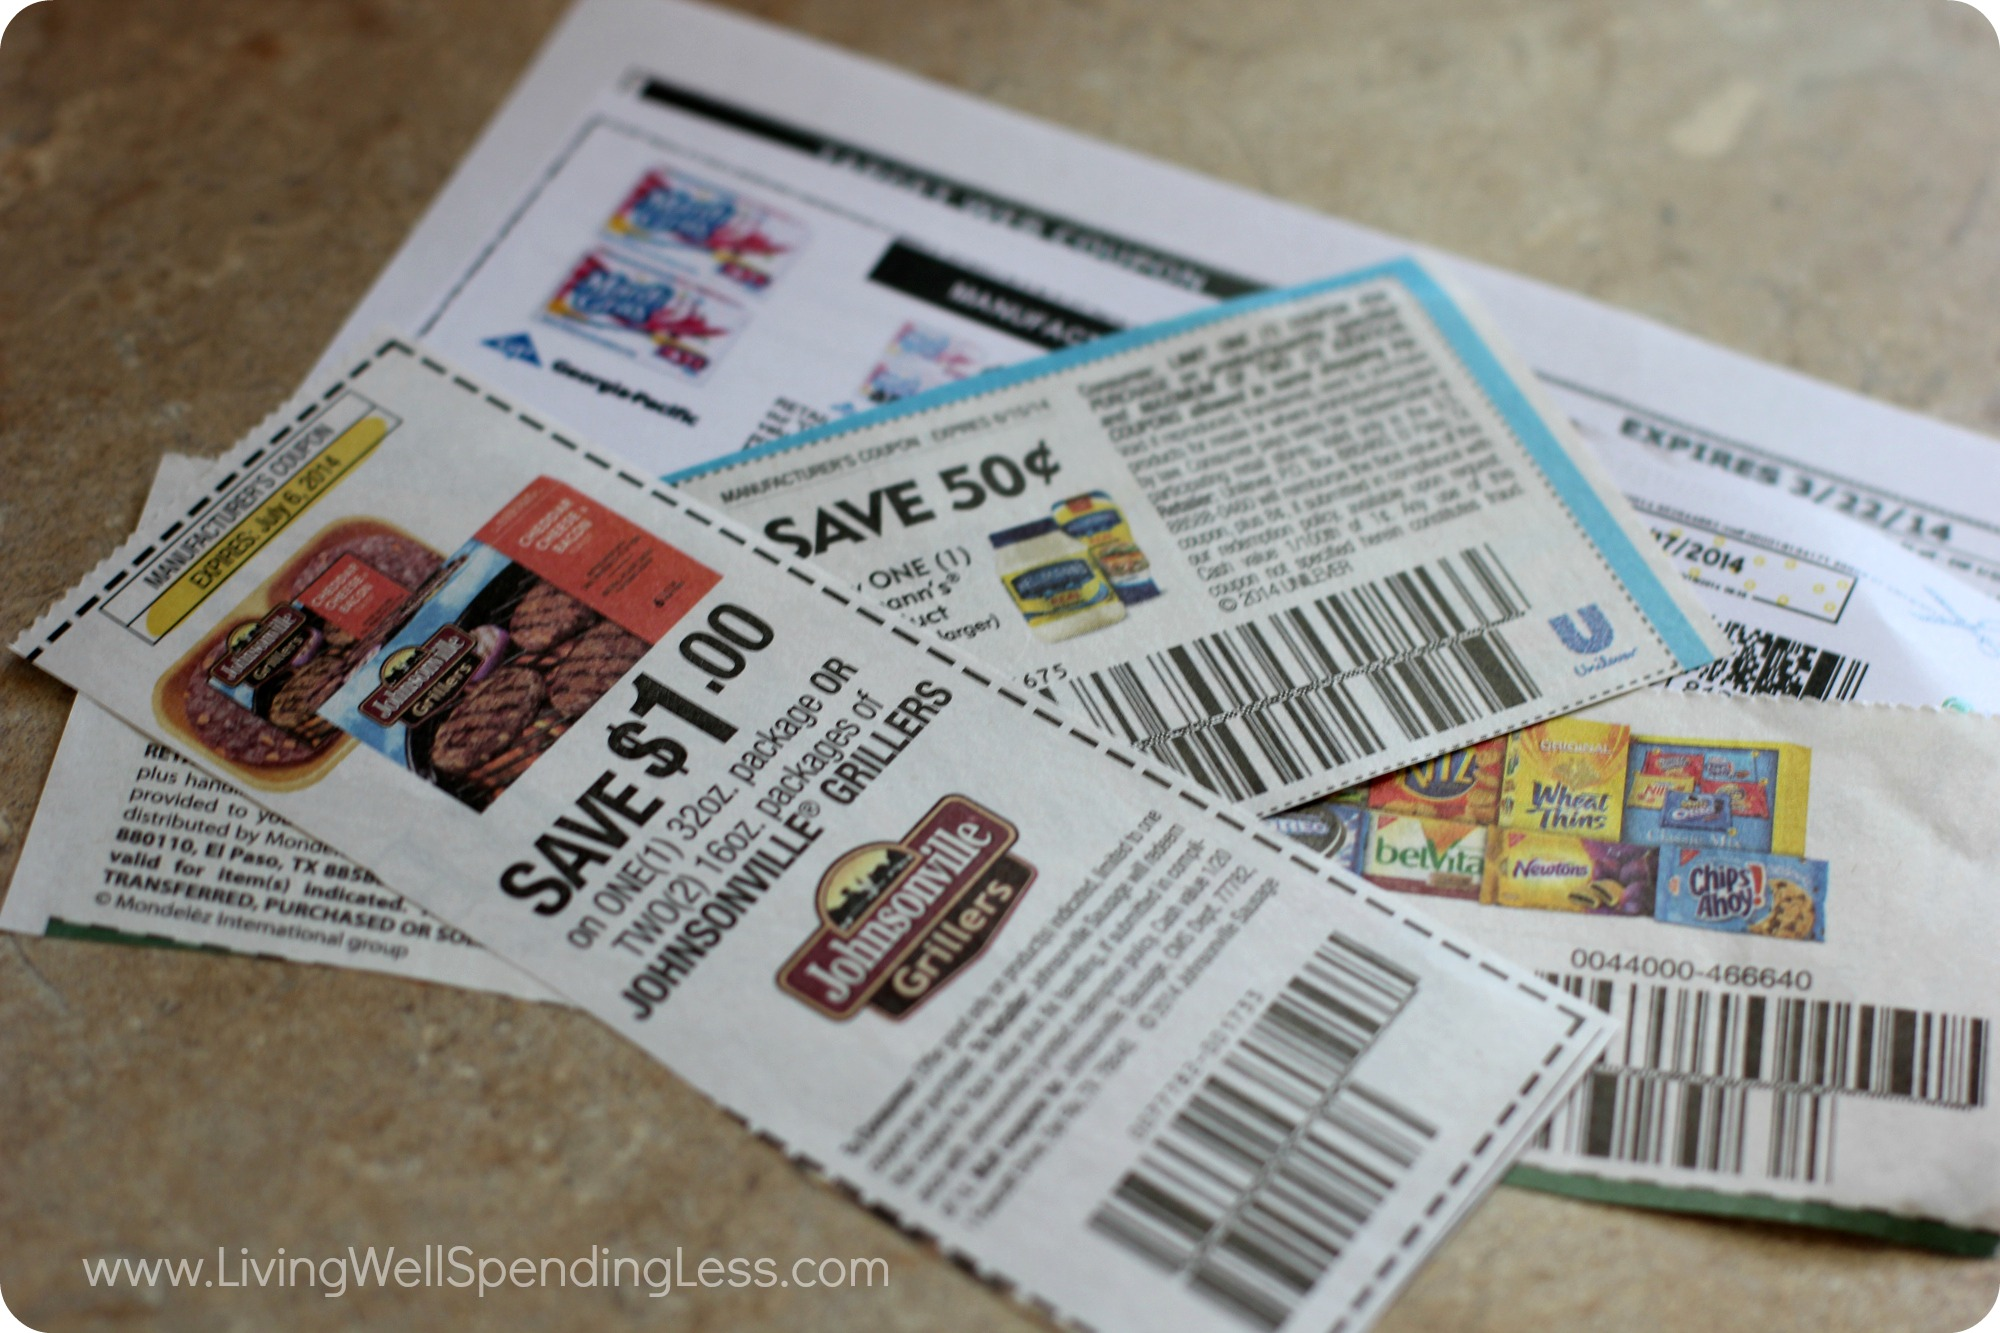 Several different coupons cut up and ready to be used.